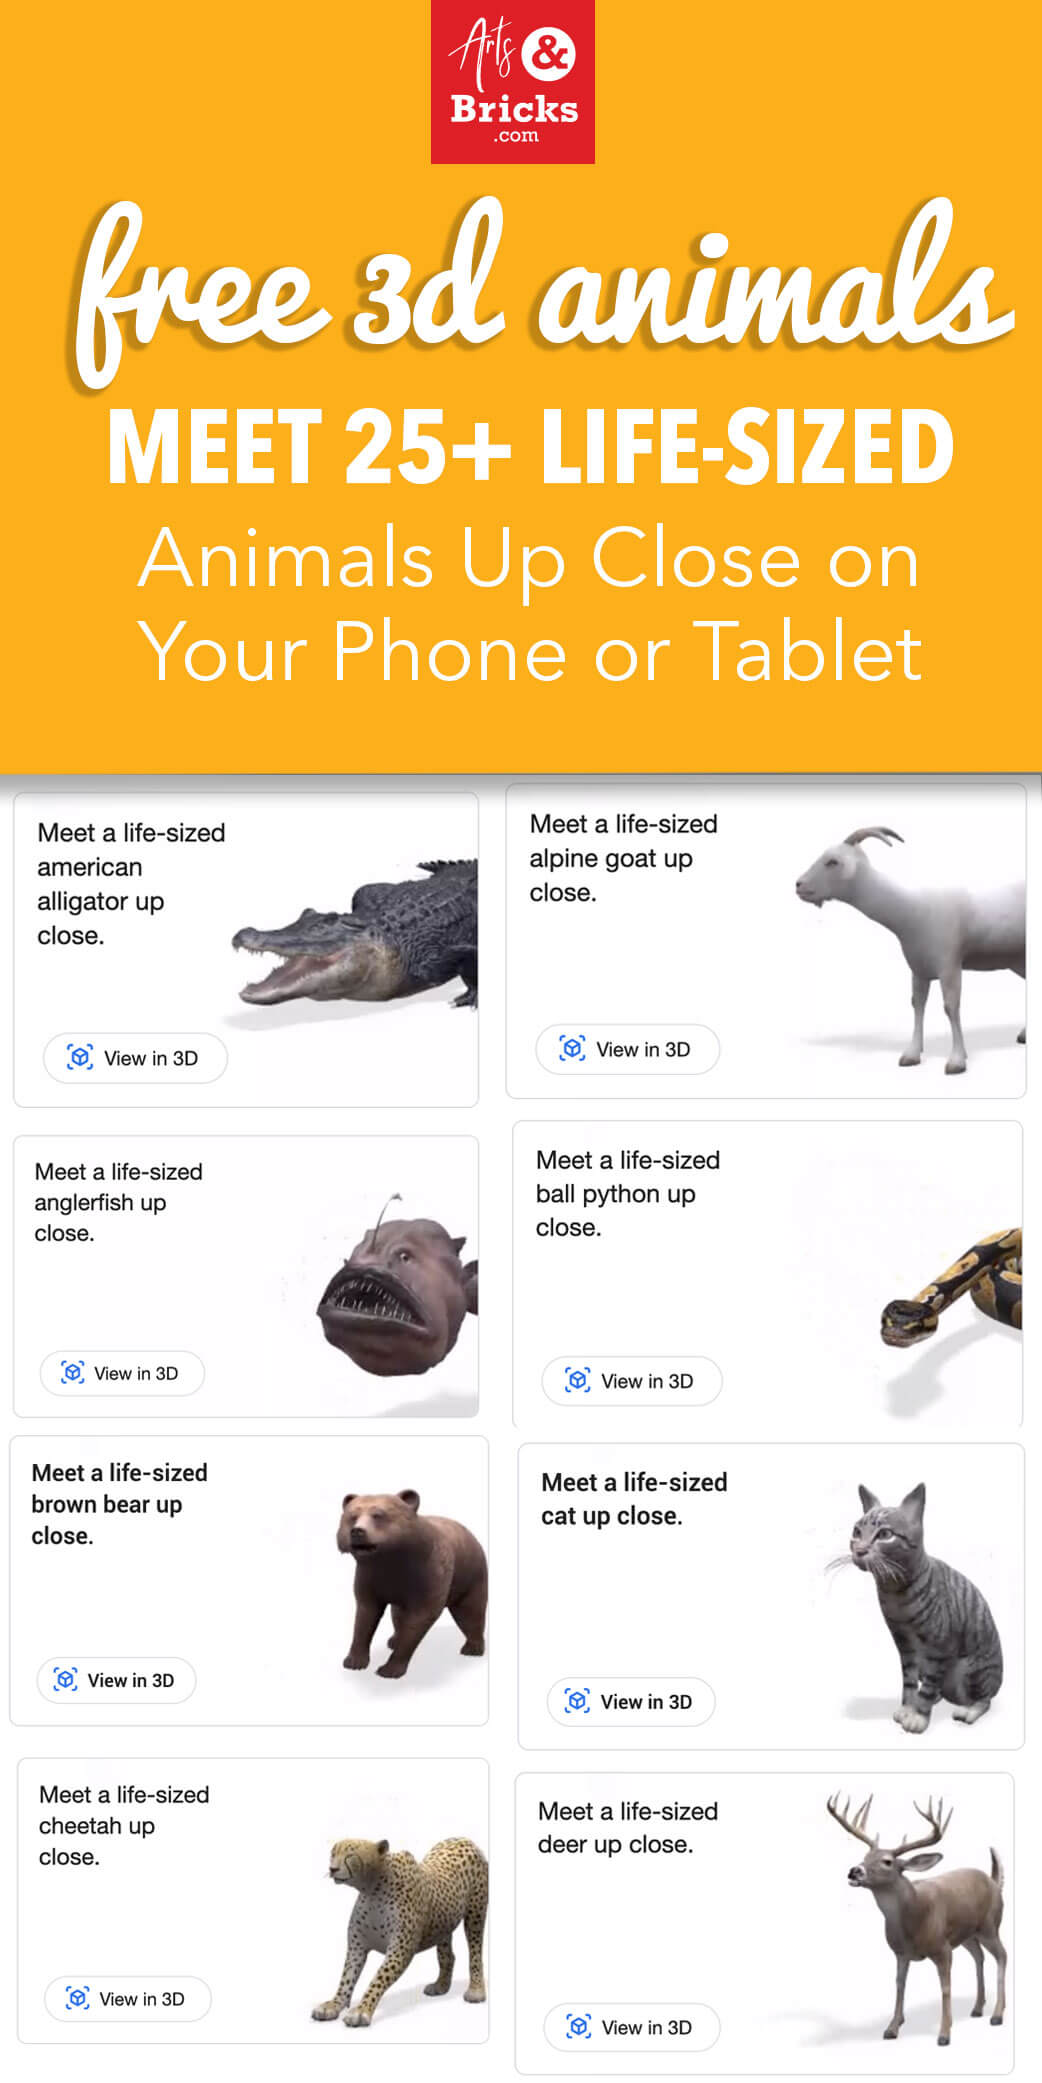 Free 3D Animals - Meet 25+ Life-Sized Animals Up Close on Your Phone or Tablet